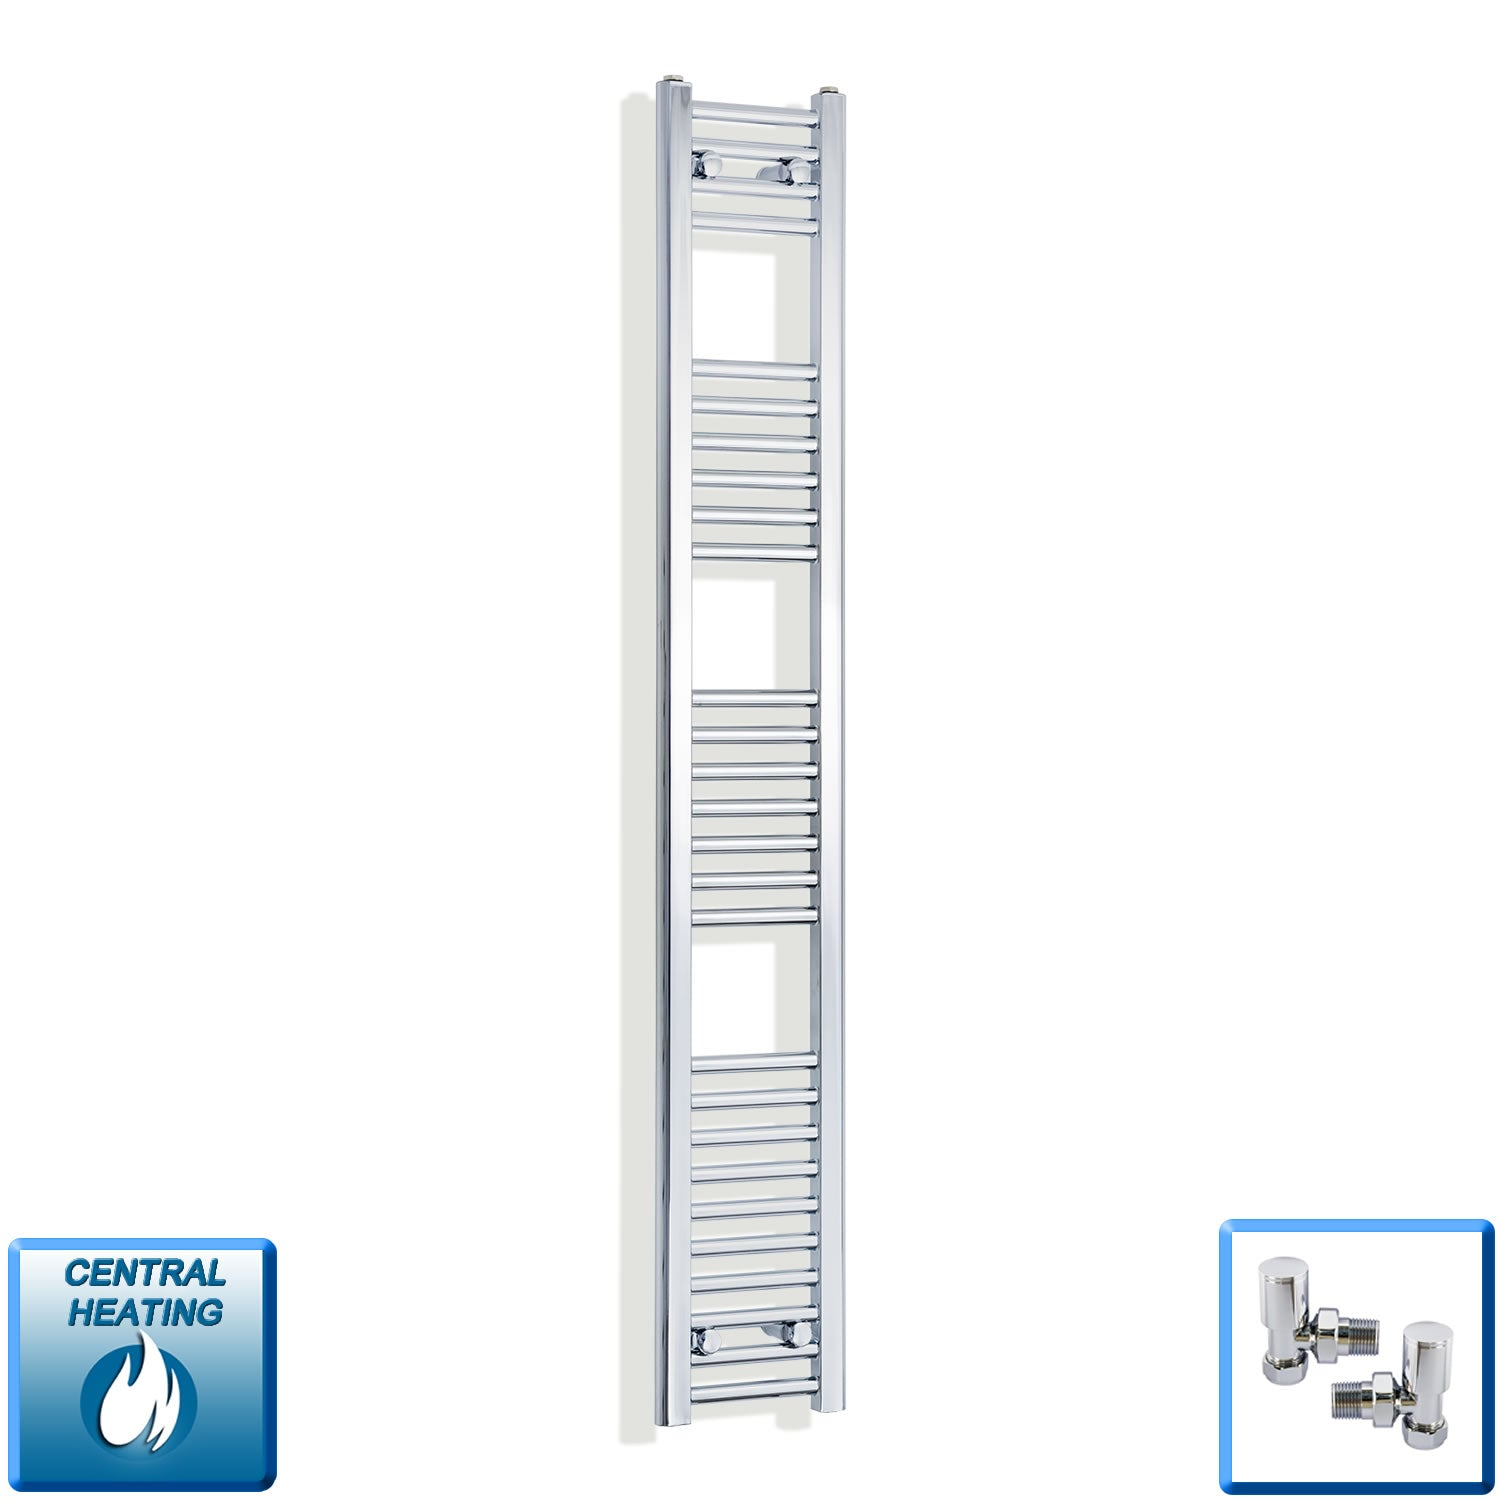 250mm Wide 1600mm High Flat Chrome Heated Towel Rail Radiator,With Angled Valve